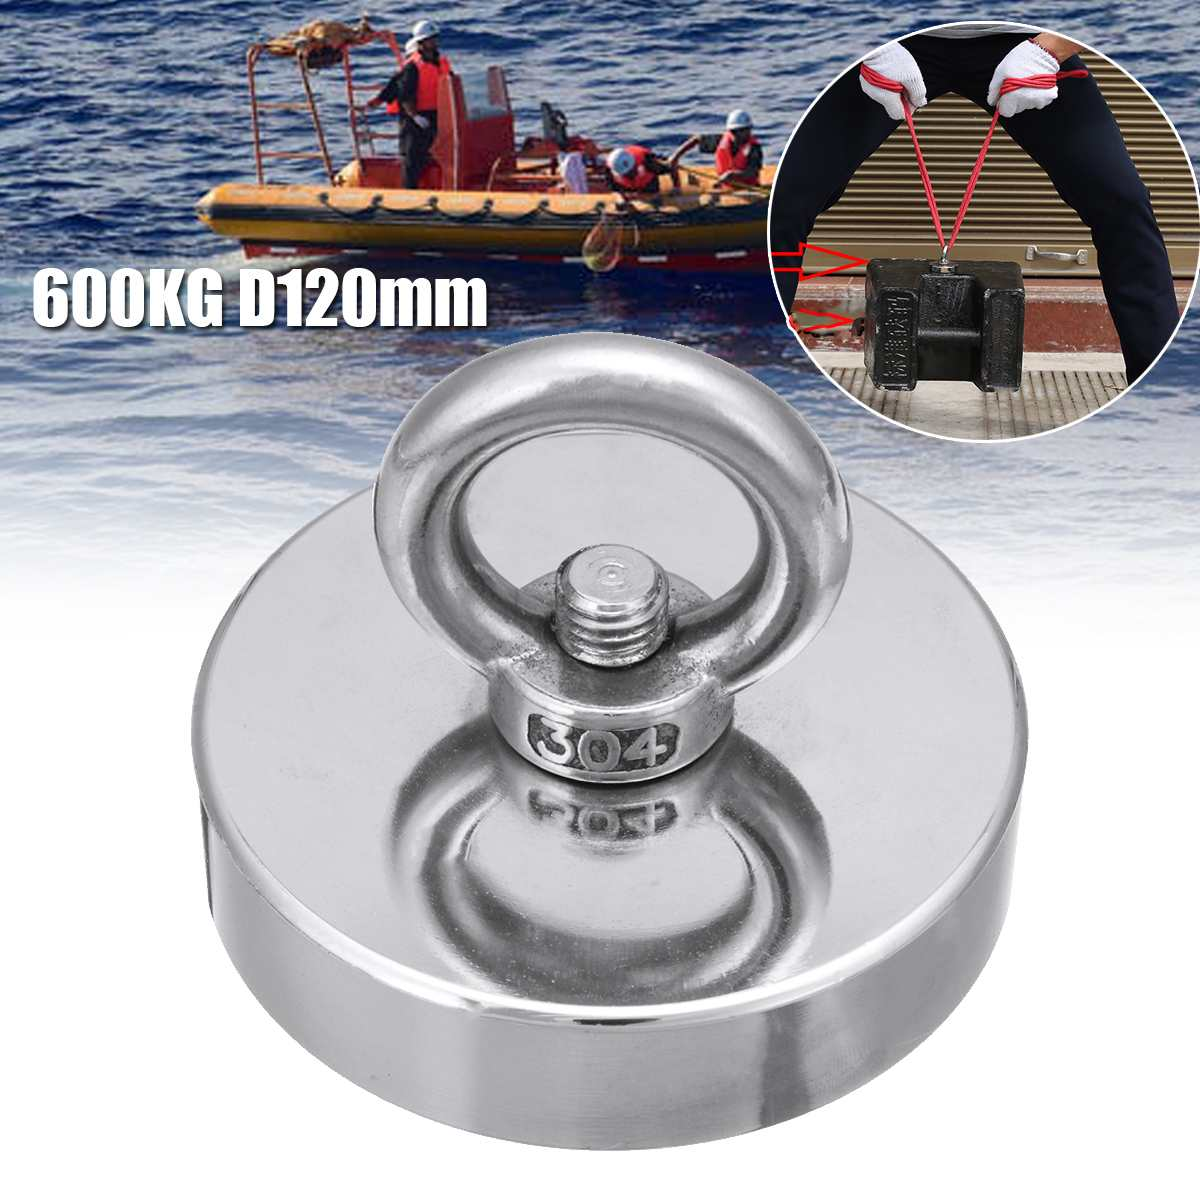 D120mm D90mm -25mm Strong Neodymium Magnet  fishing Salvage Search Magnetic Material Deap Sea Recovery Treasure Hunting MagnetD120mm D90mm -25mm Strong Neodymium Magnet  fishing Salvage Search Magnetic Material Deap Sea Recovery Treasure Hunting Magnet